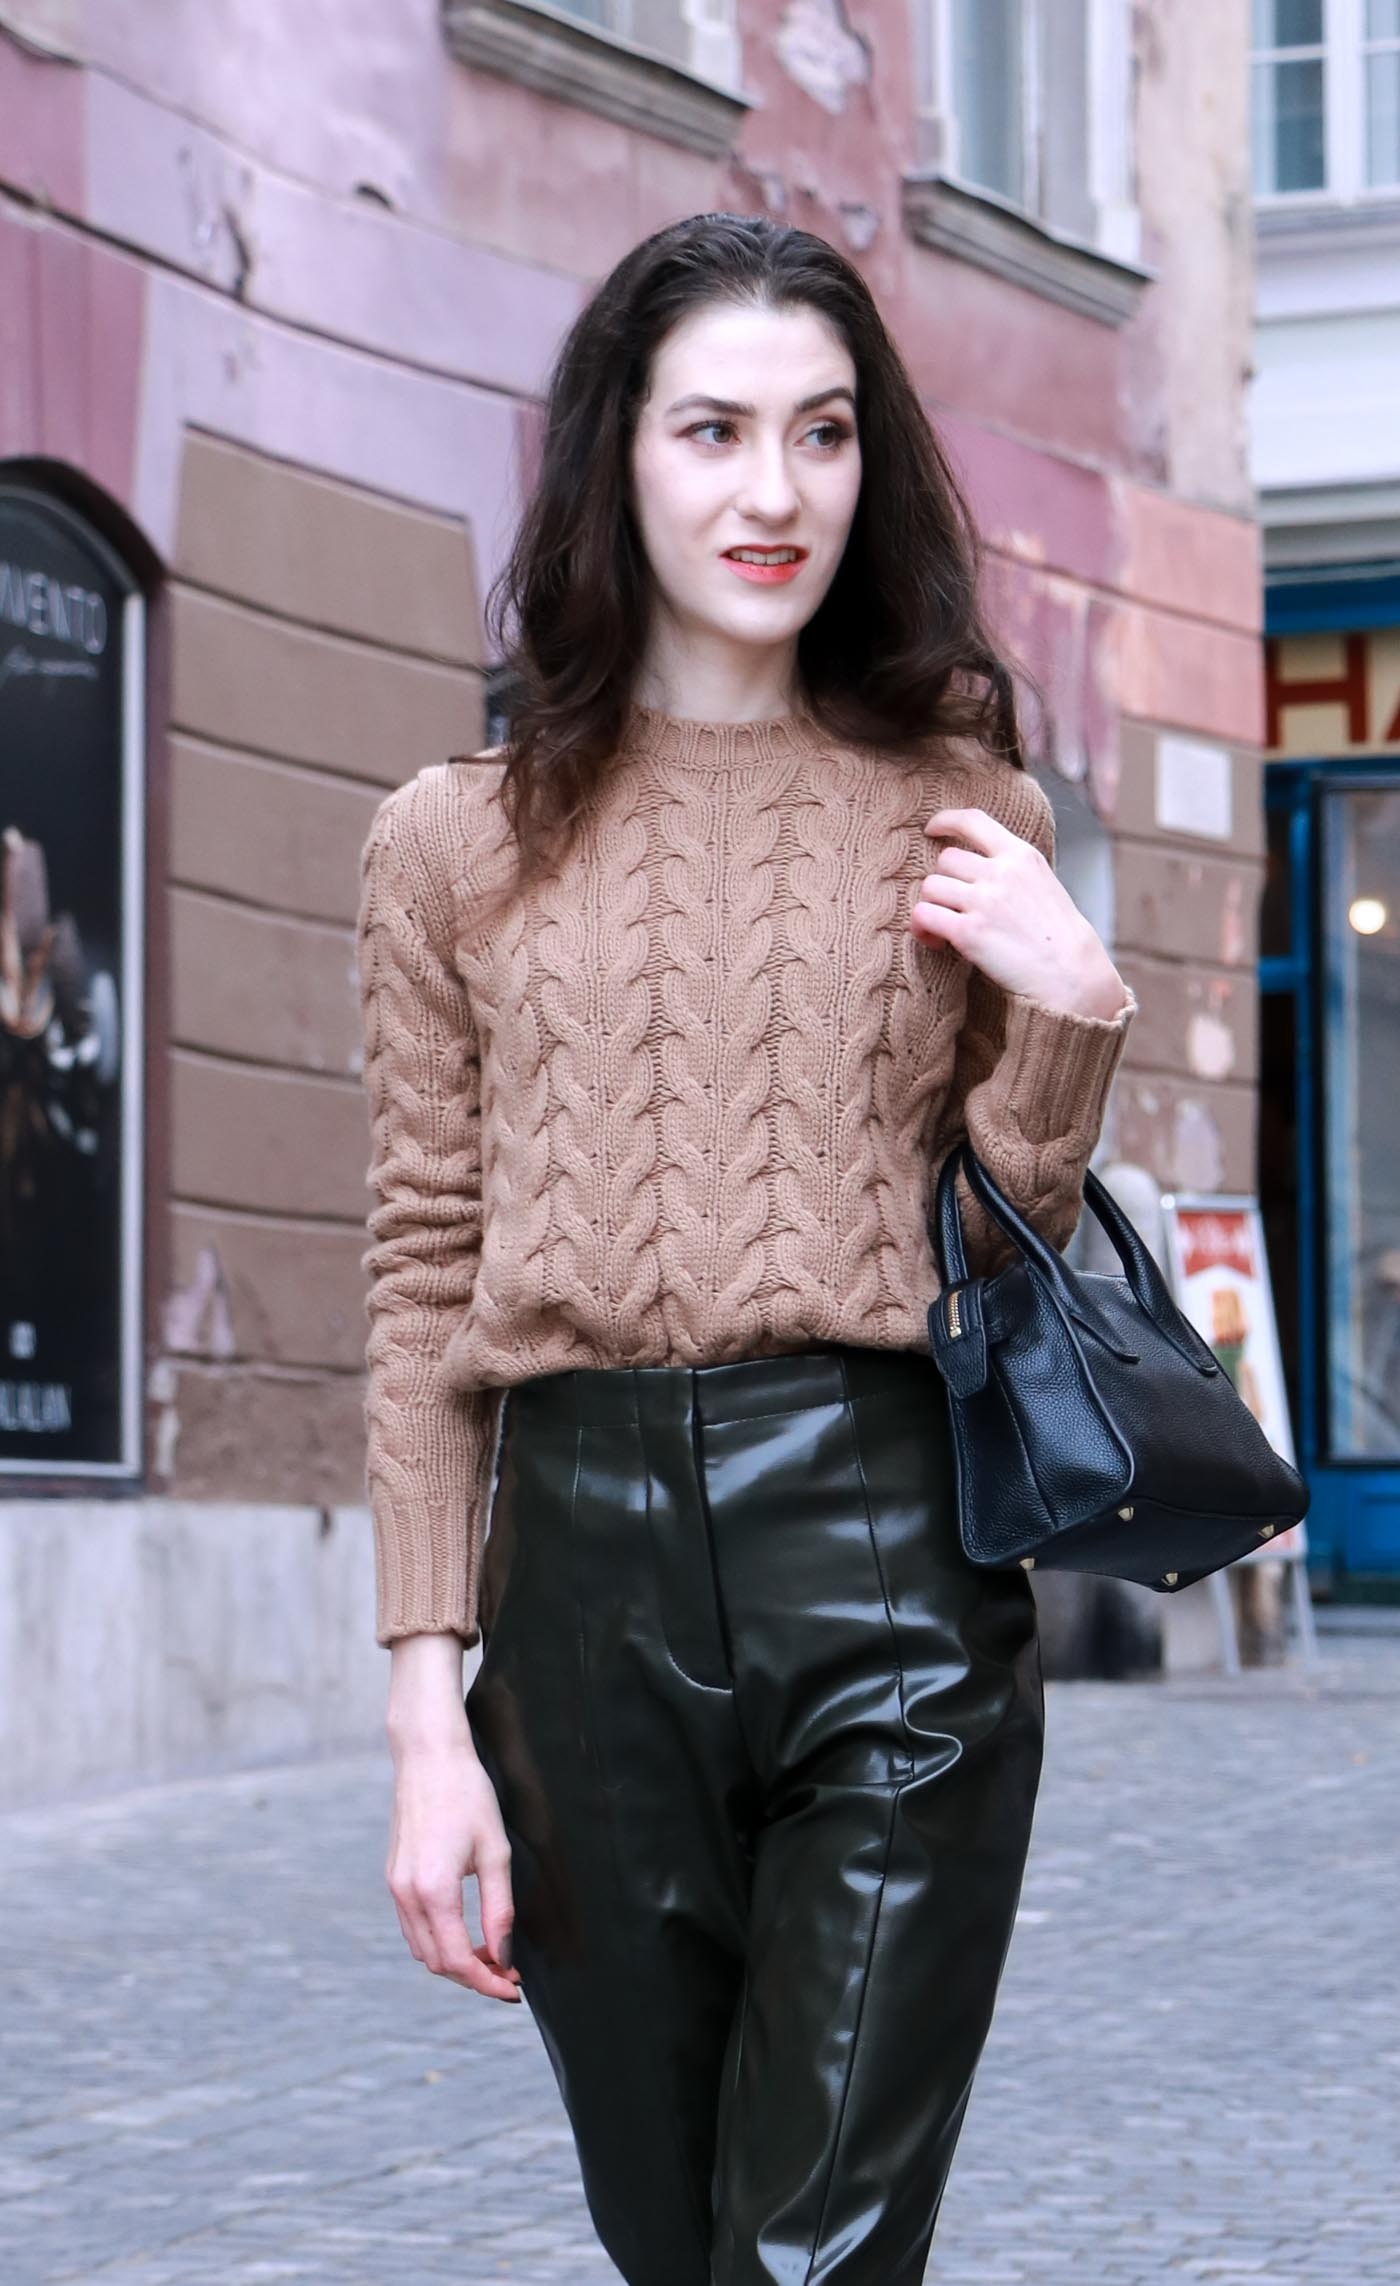 Fashion Blogger Veronika Lipar of Brunette from Wall Street wearing chic fall outfit